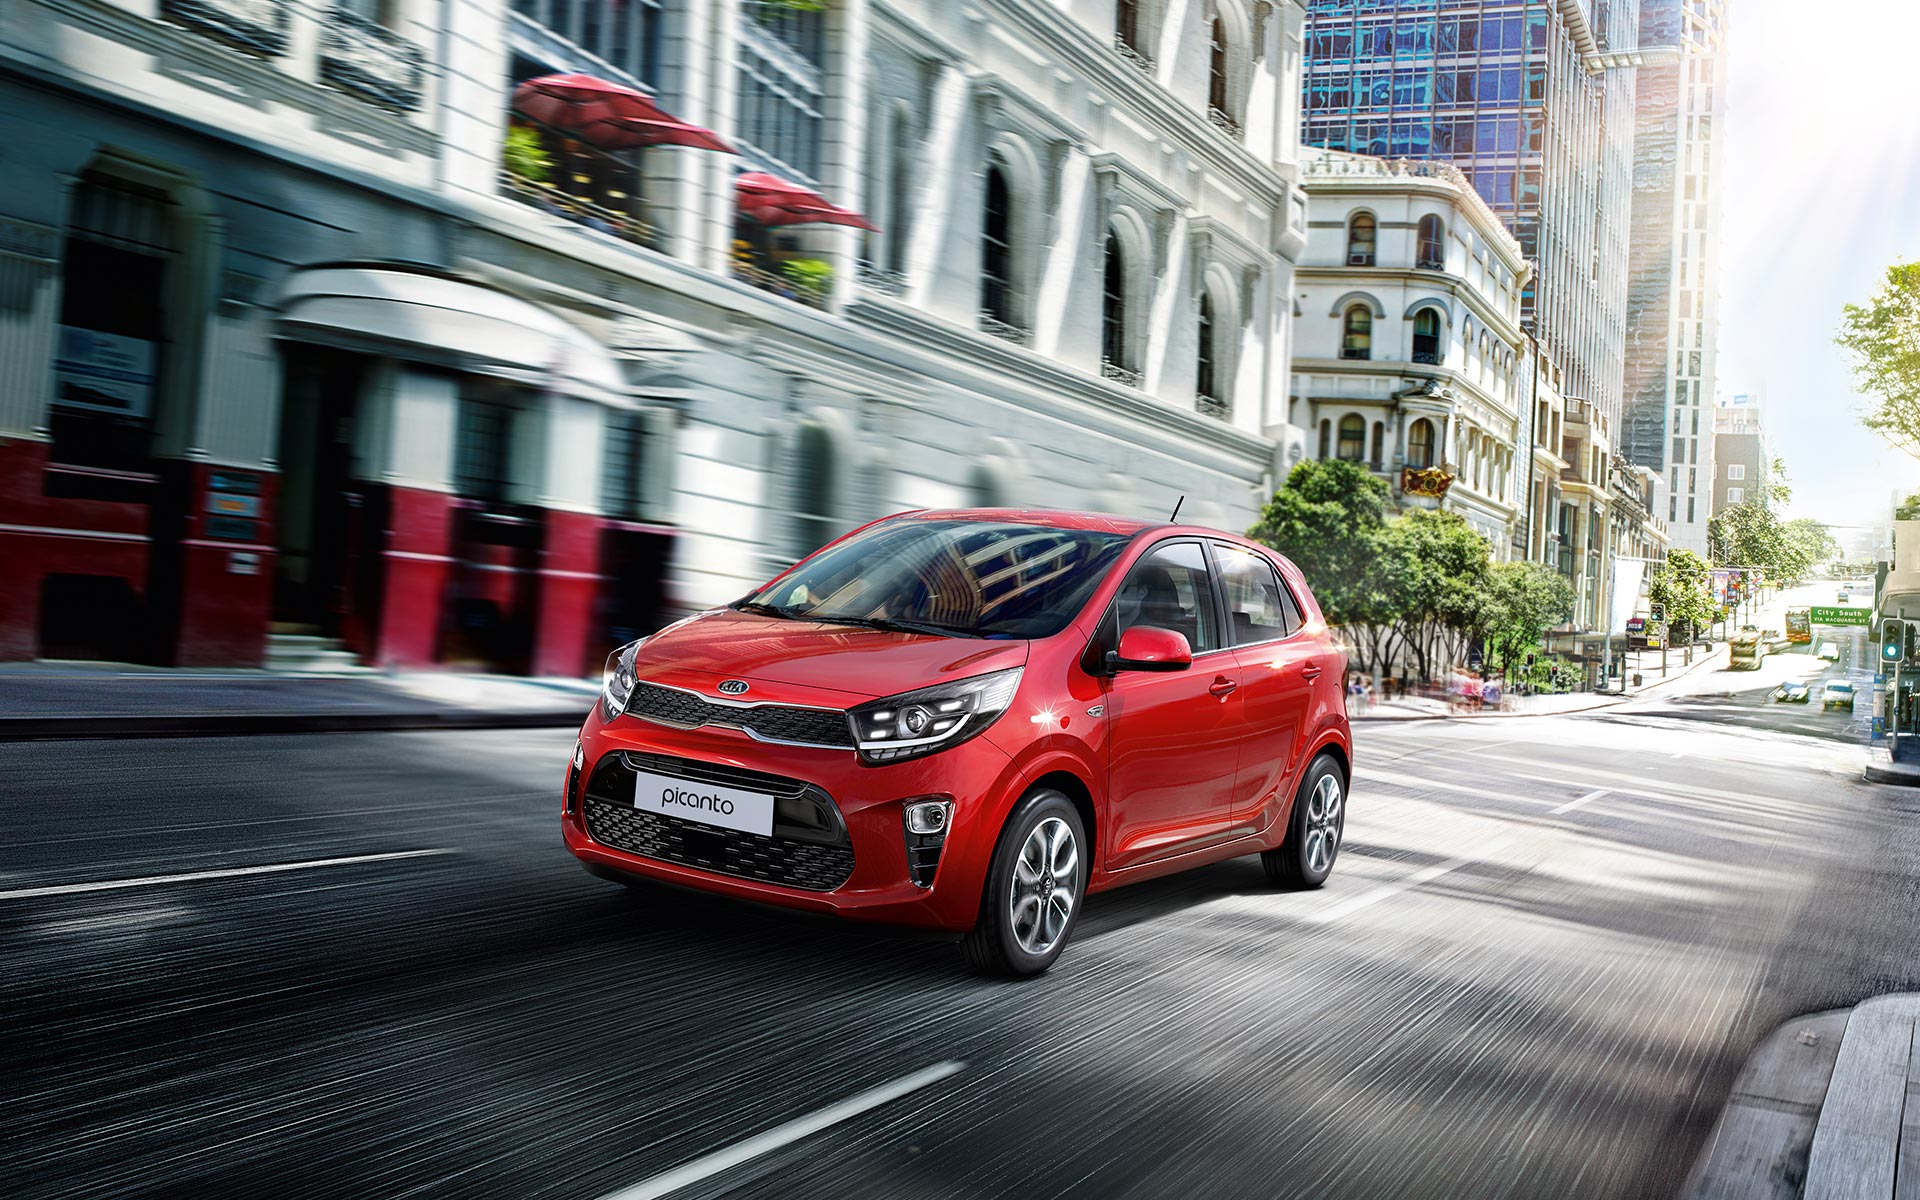 kia-picanto-jape-my21-driving-red-34front-w.jpg